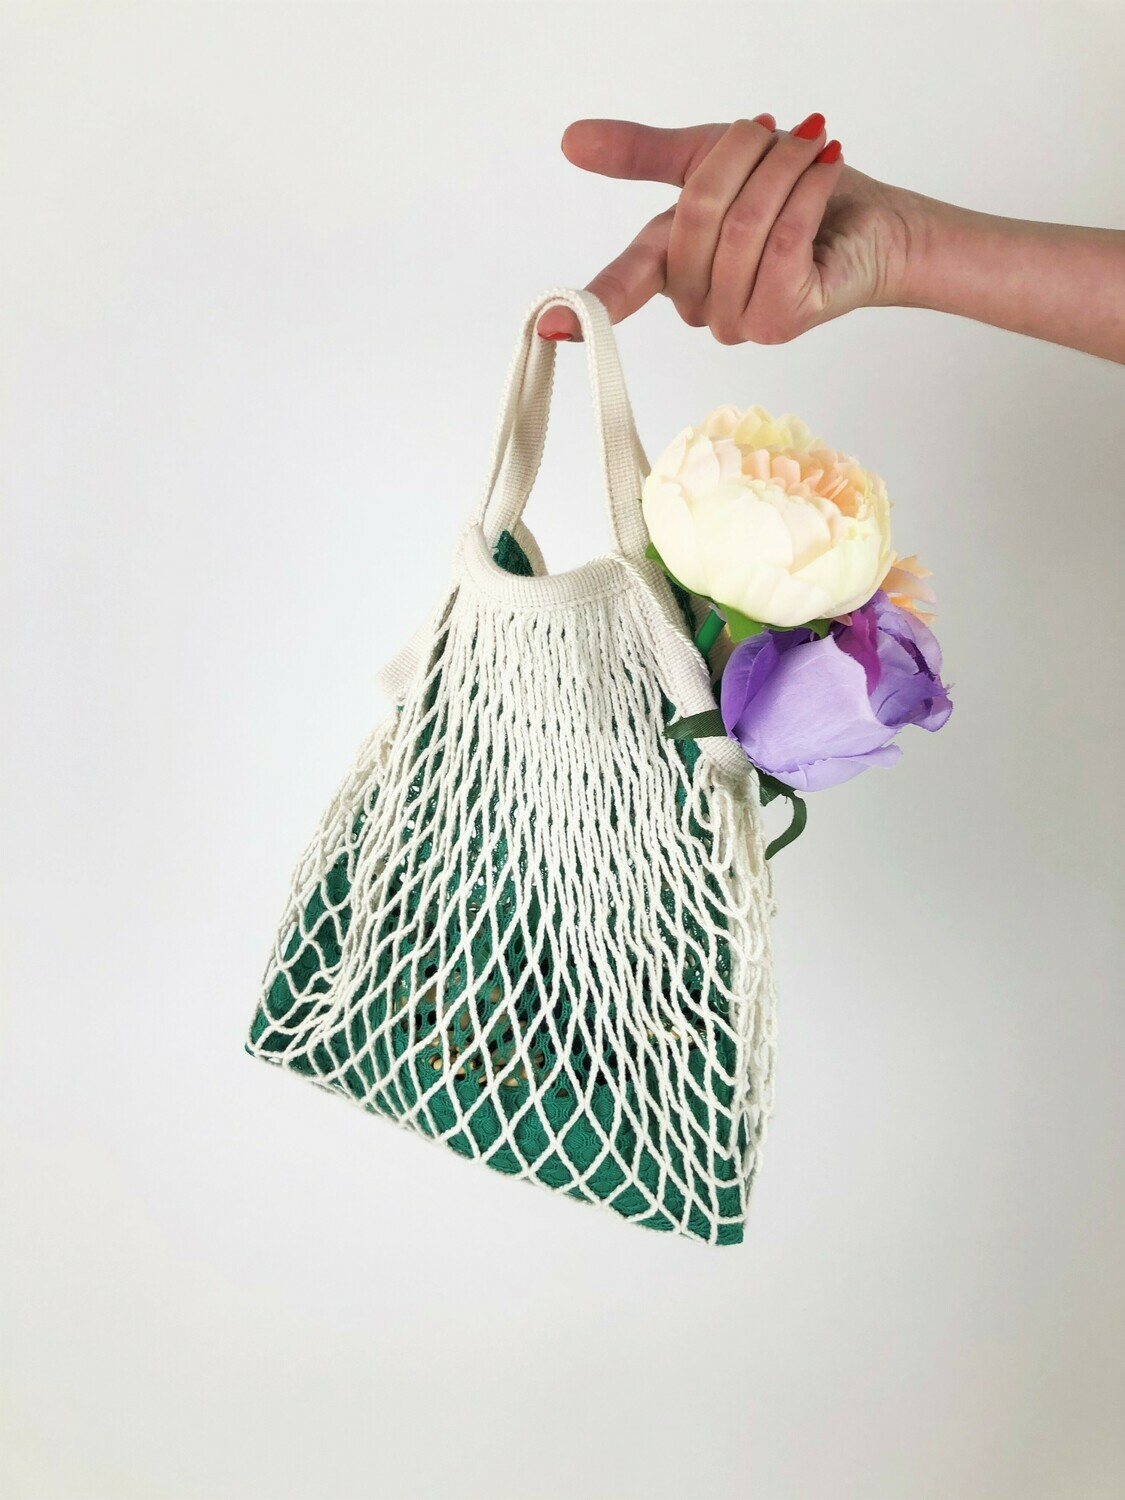 MARIELLA - Tote Netted Lined Bag, Slouchy Little Bag